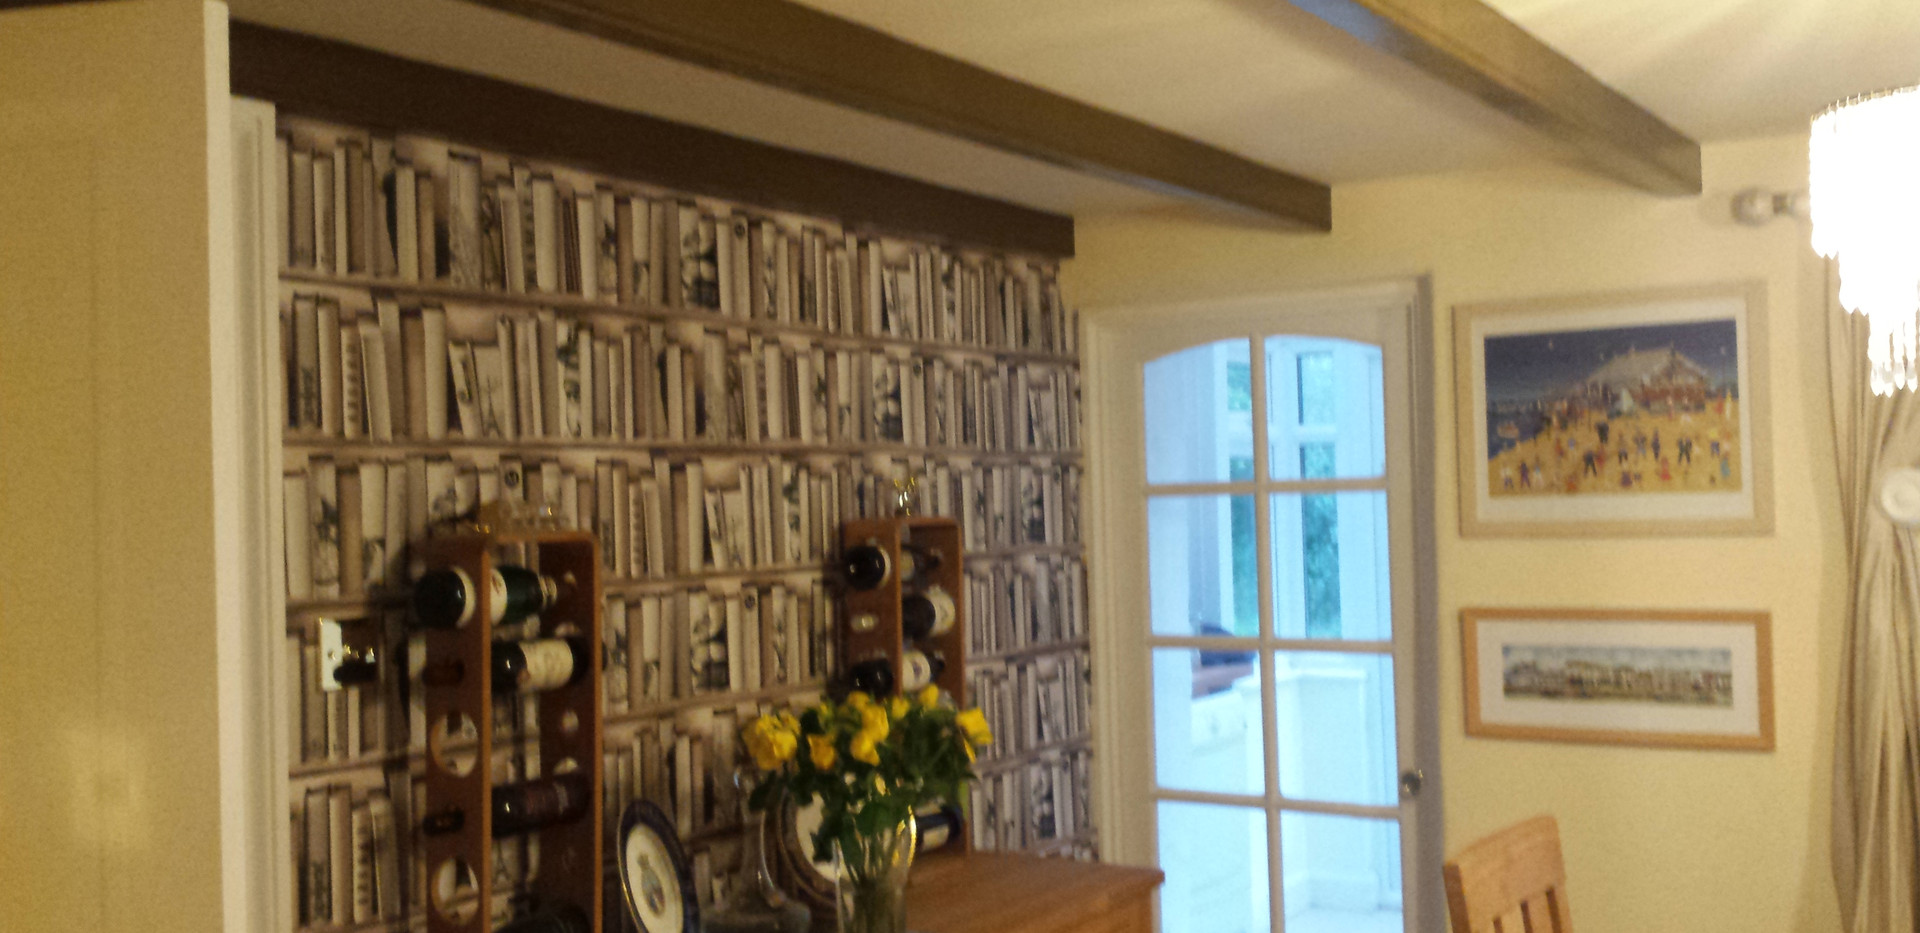 Dining room makeover with bookshelf feature wallpaper.